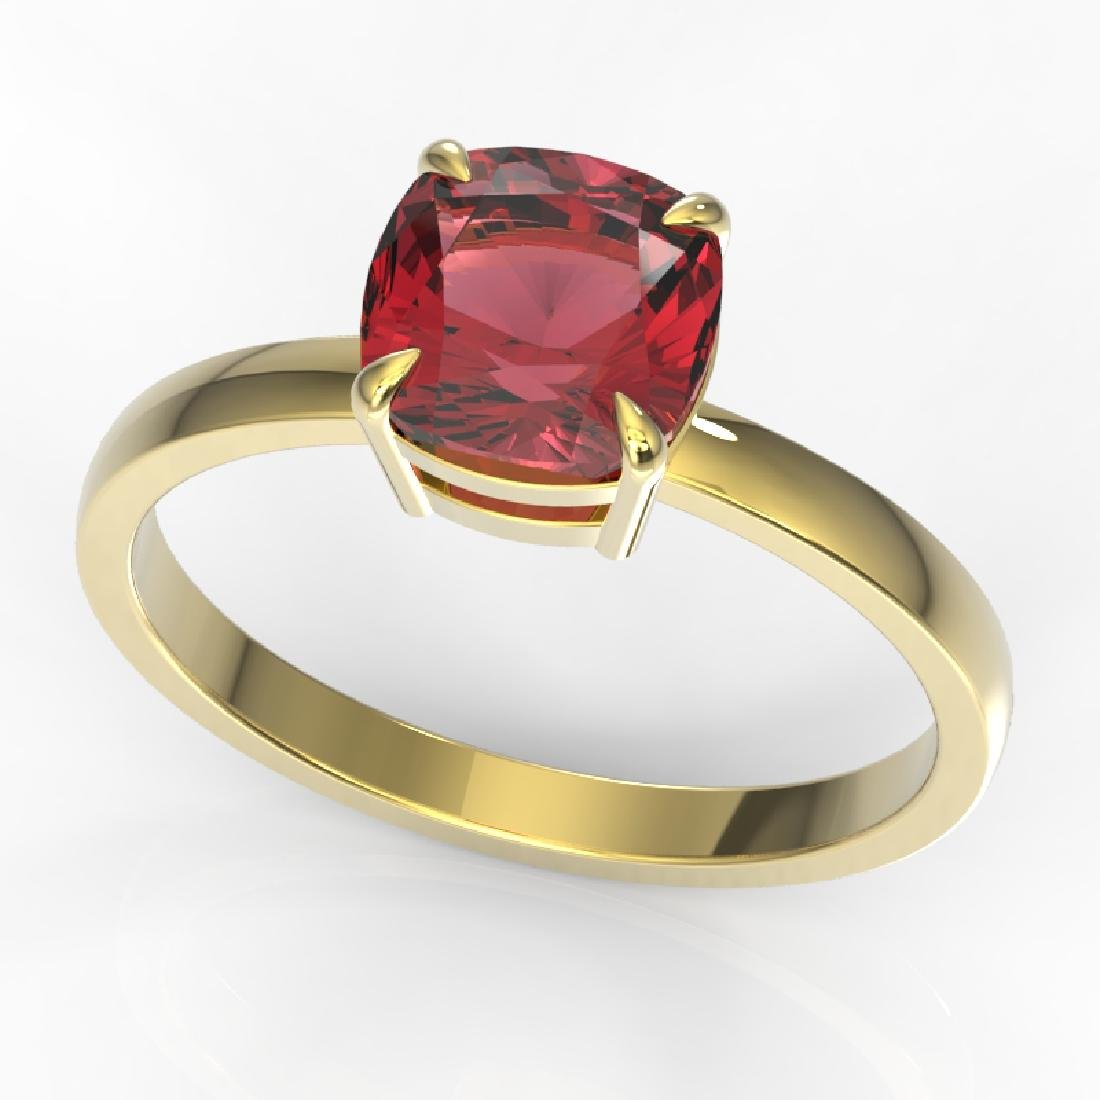 2 CTW Cushion Cut Pink Tourmaline Solitaire Engagement - 2